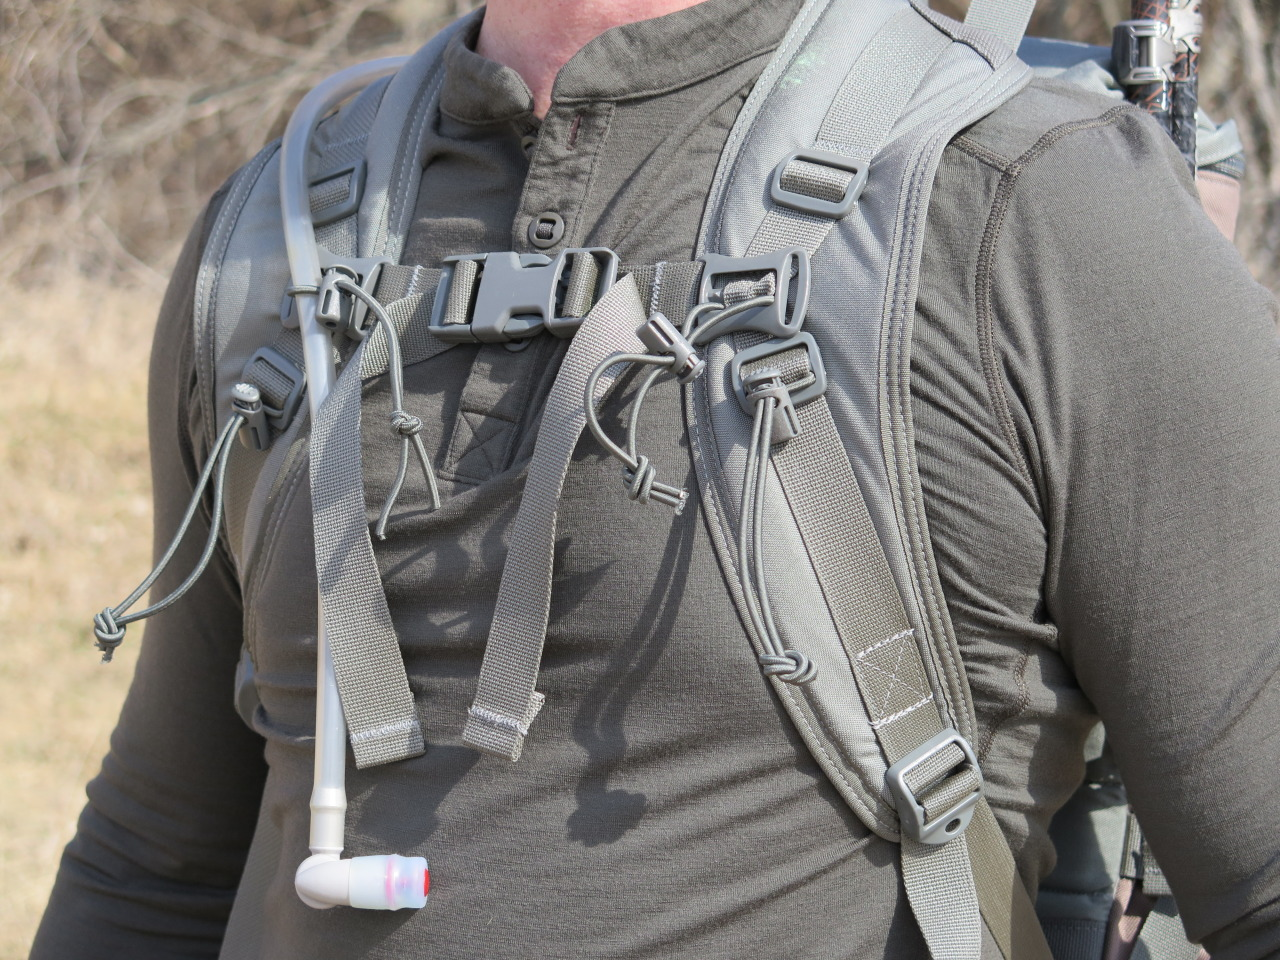 Wide Harness Straps Spread the Weight of Loads Nicely